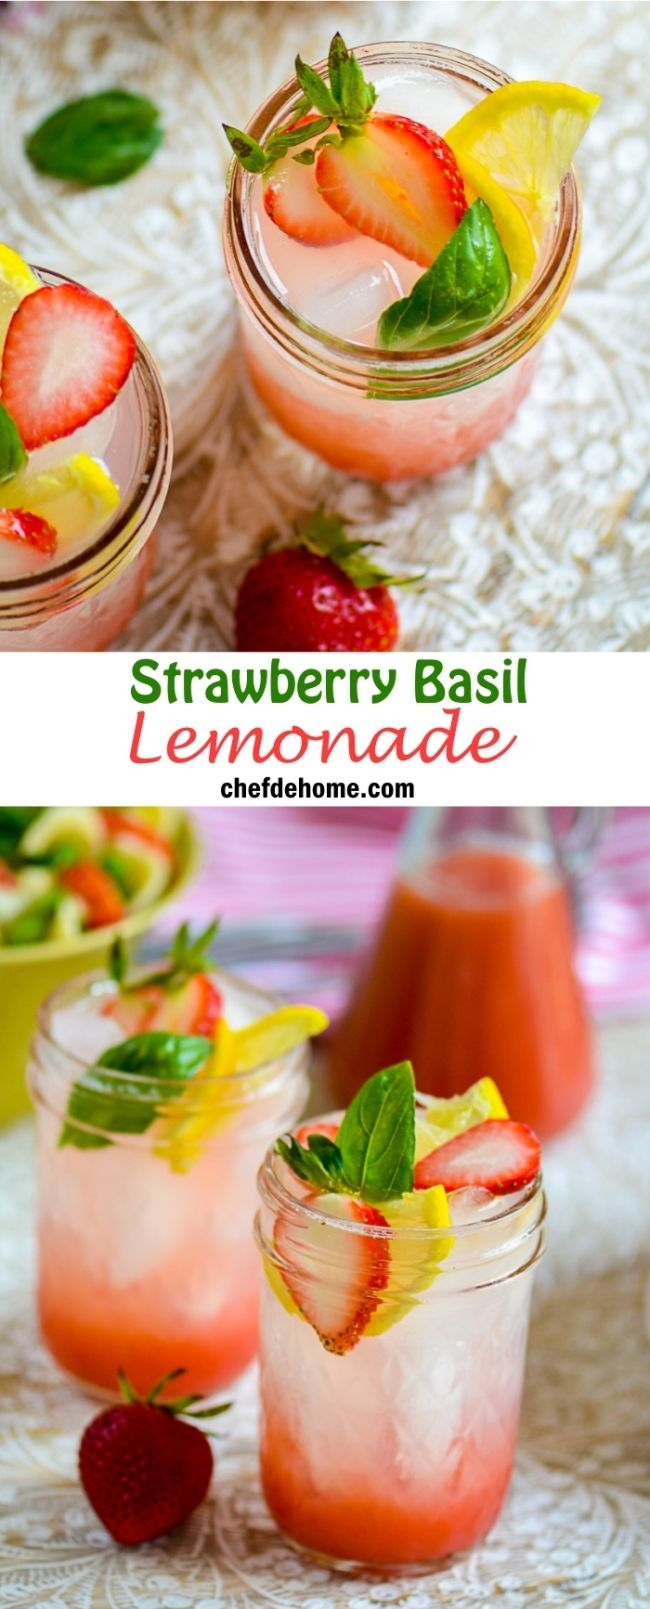 Easy Refreshing Fruity Strawberry Basil Lemonade | chefdehome.com (summer food strawberry lemonade)